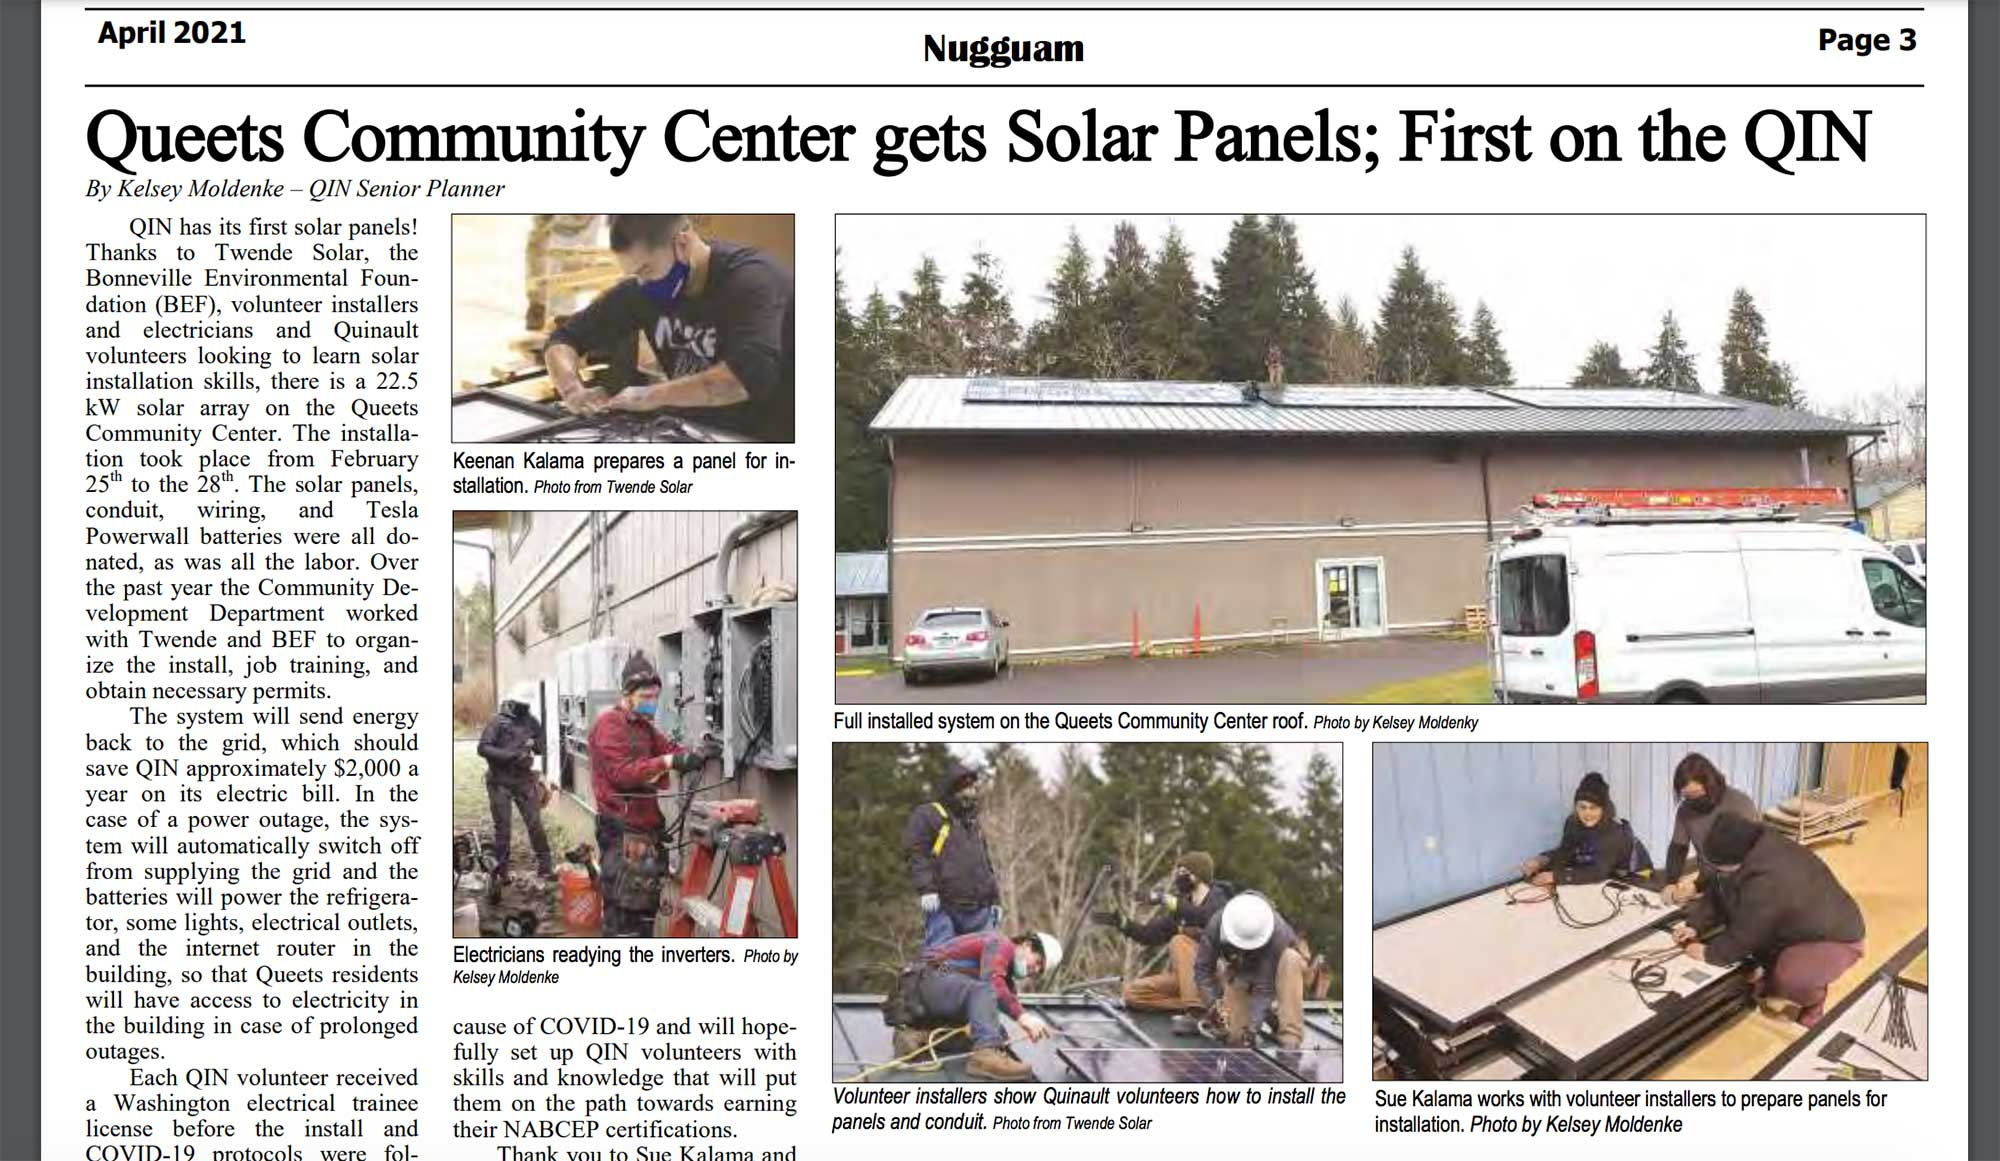 Nugguam article on the QIN Solar project